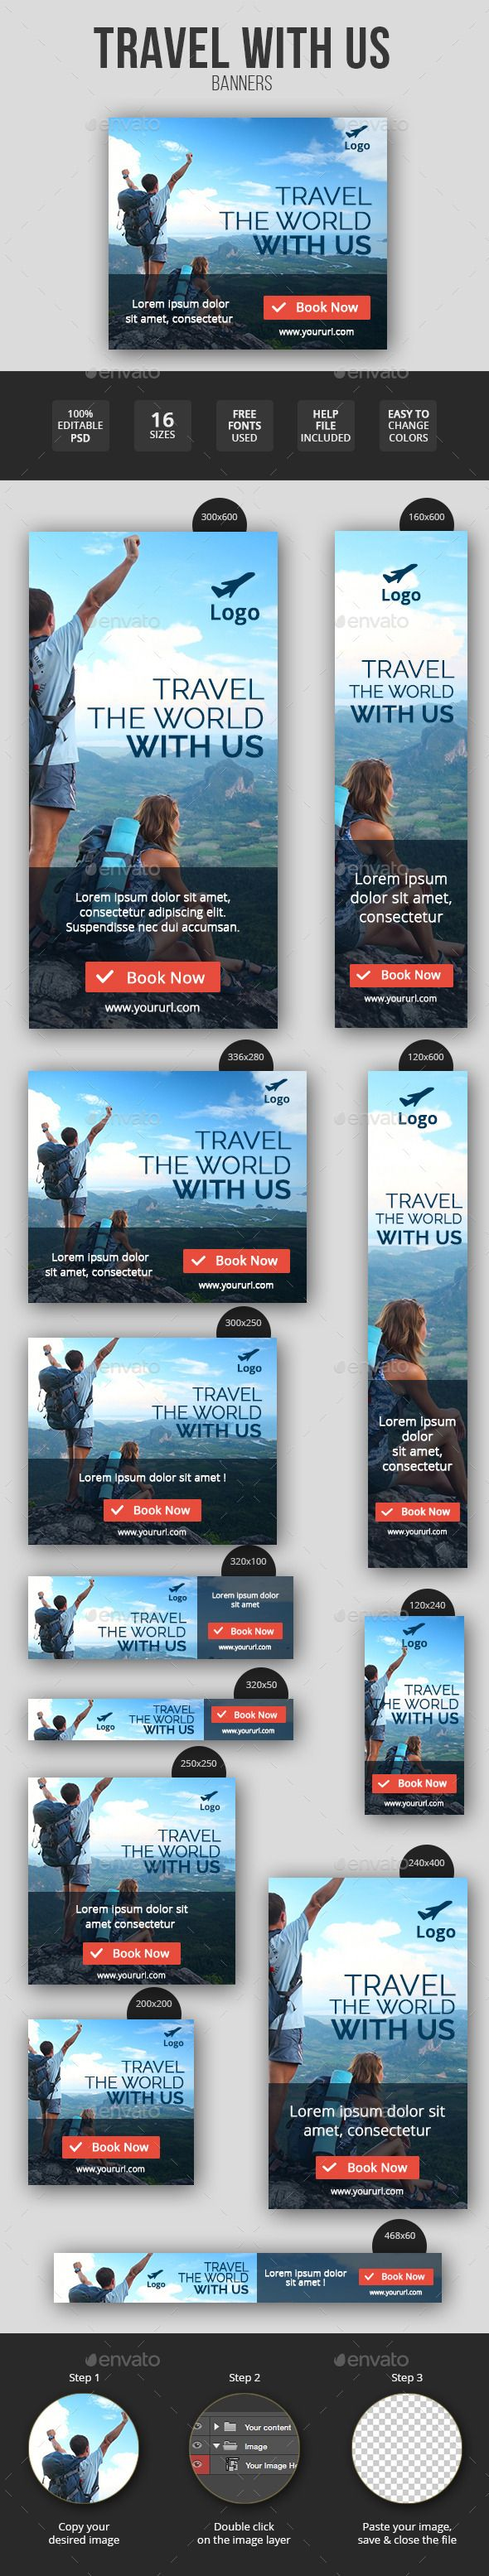 Flat & Minimal Travel Banners Tempalte #design Download: http://graphicriver.net/item/flat-minimal-travel-banners/11547501?ref=ksioks